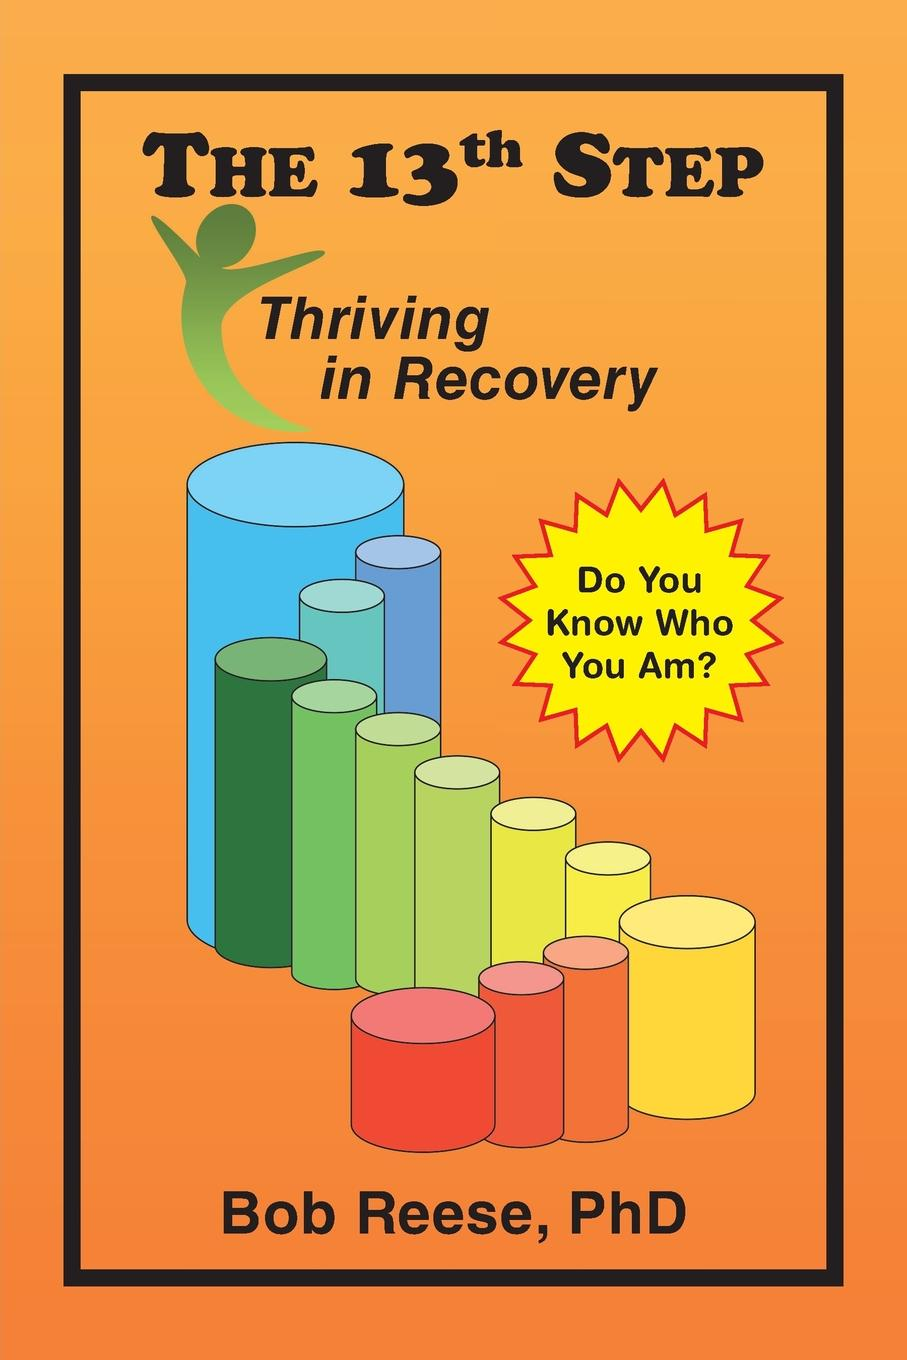 PhD Bob Reese The 13th Step. Thriving in Recovery paul davis addiction psychology and treatment